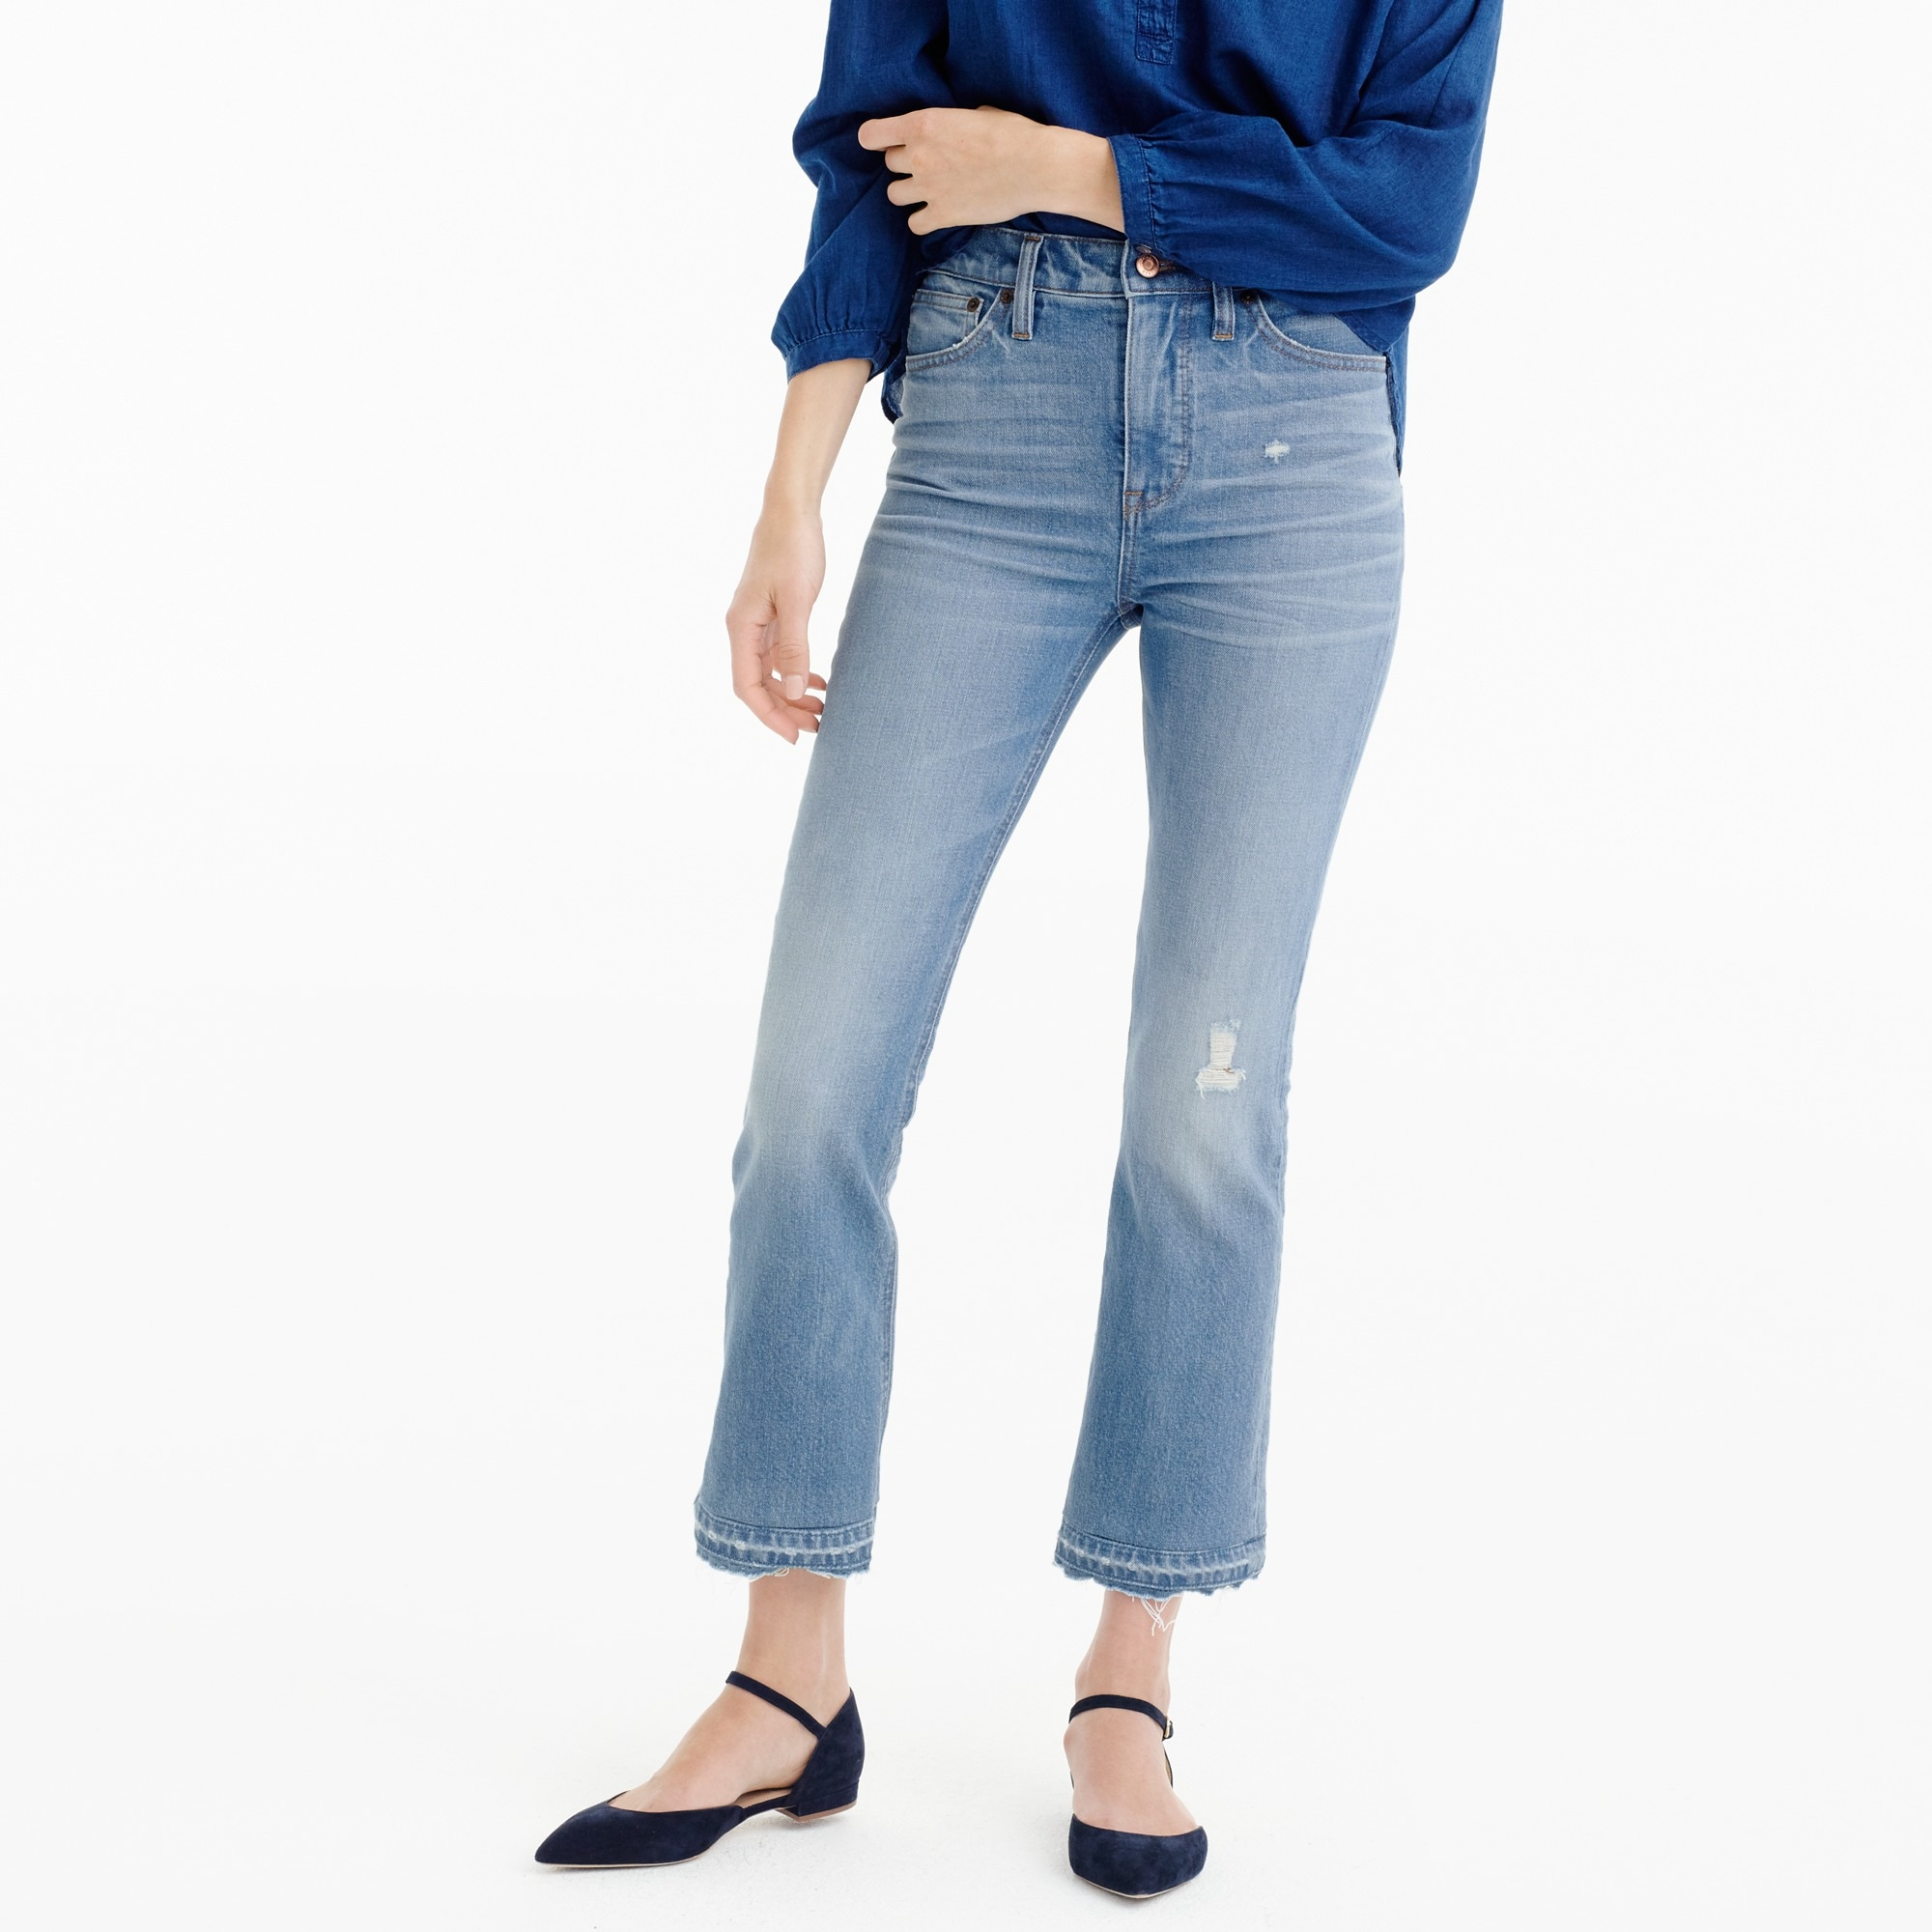 Tall Billie demi-boot crop jean in Sherman wash